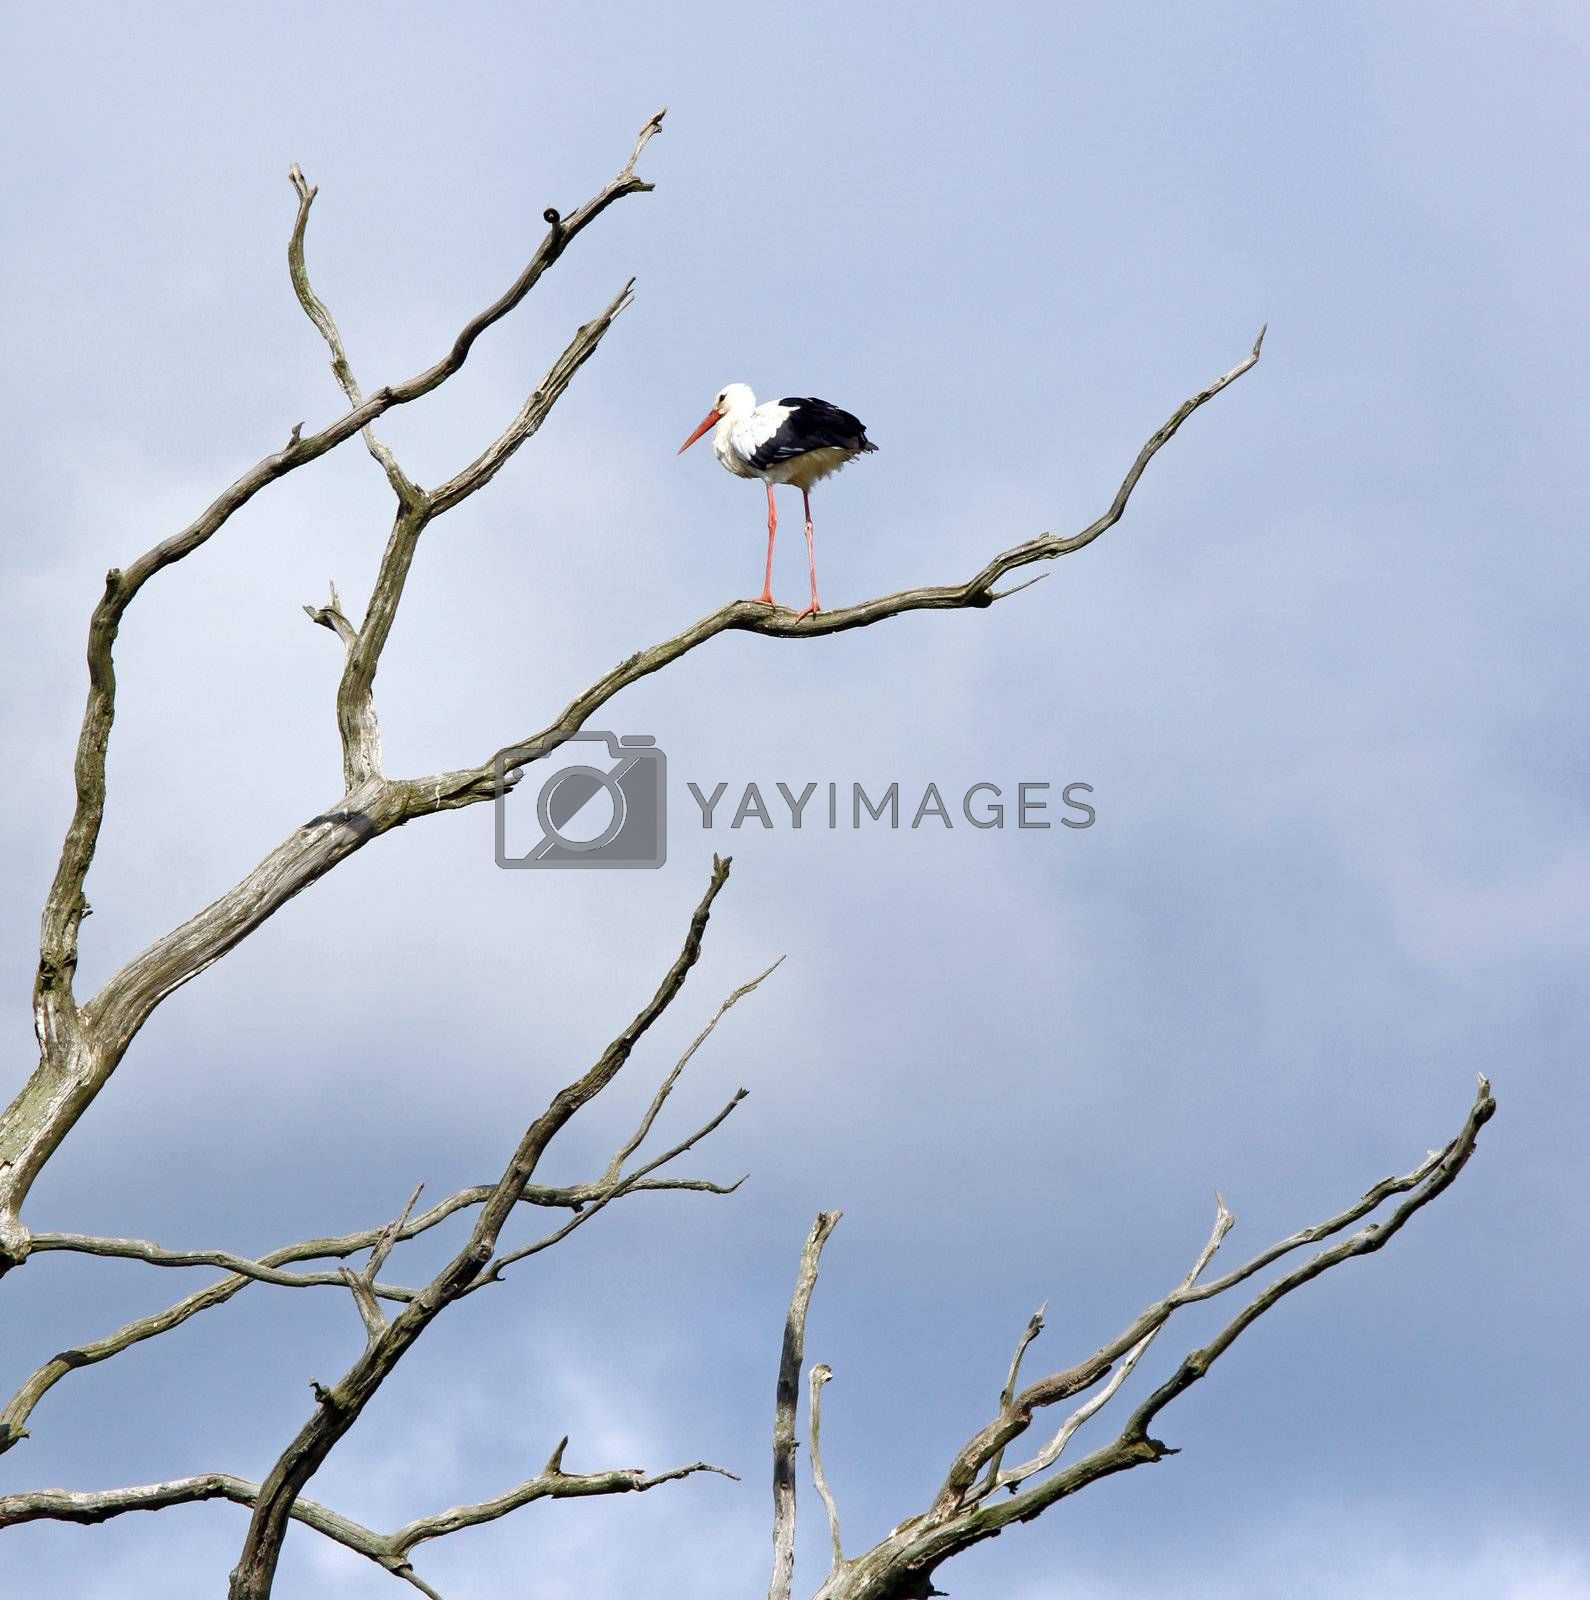 Dead tree branches against blue sky and stork